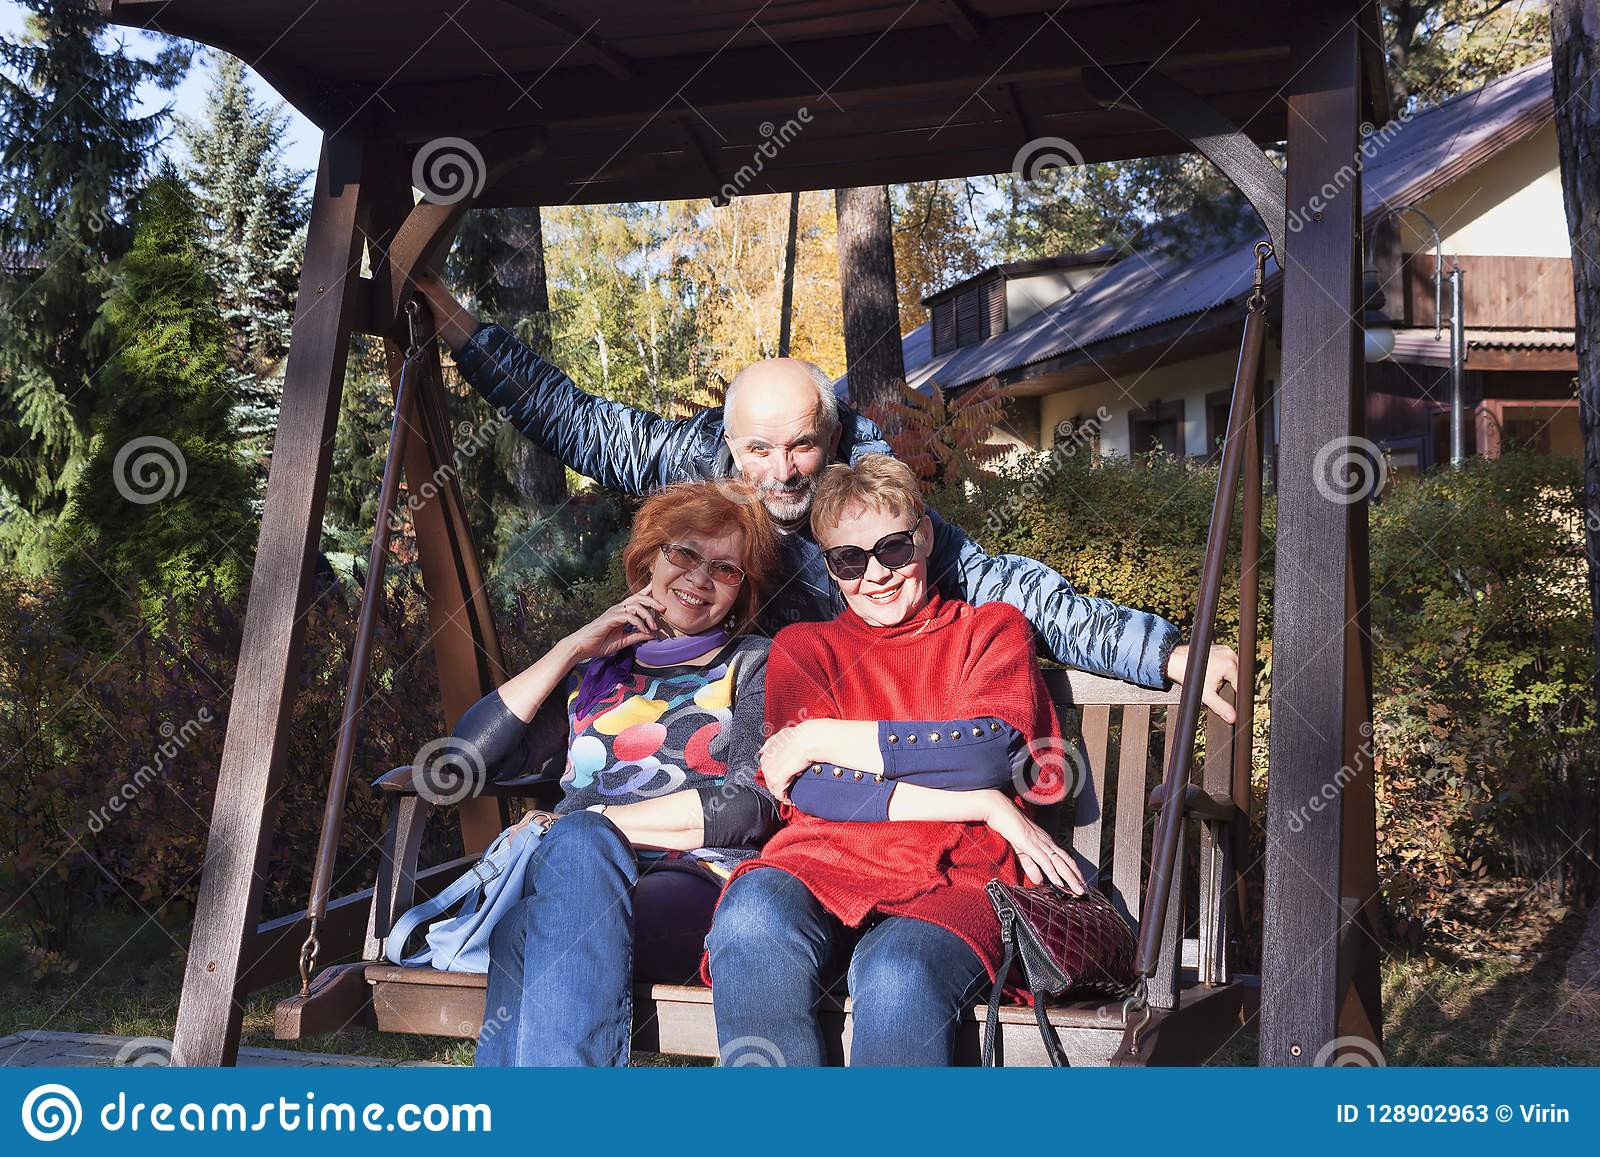 Two Women Of Mature Age On A Bench And Behind Them A Man Stock Image